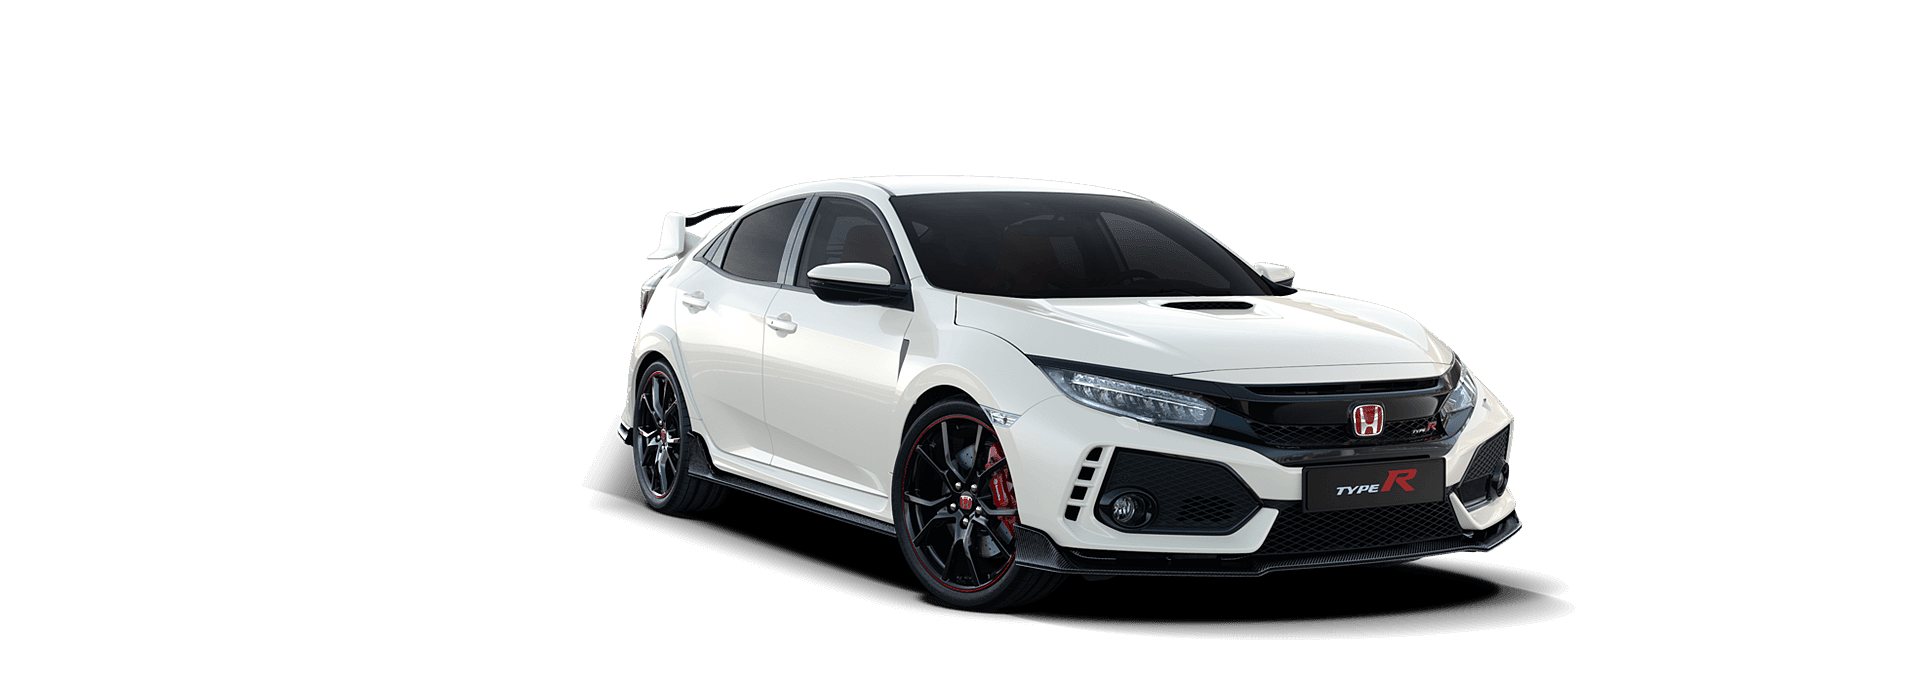 Honda Used Cars >> Used Honda Civic Type R Hatchback Buy Approved Second Hand